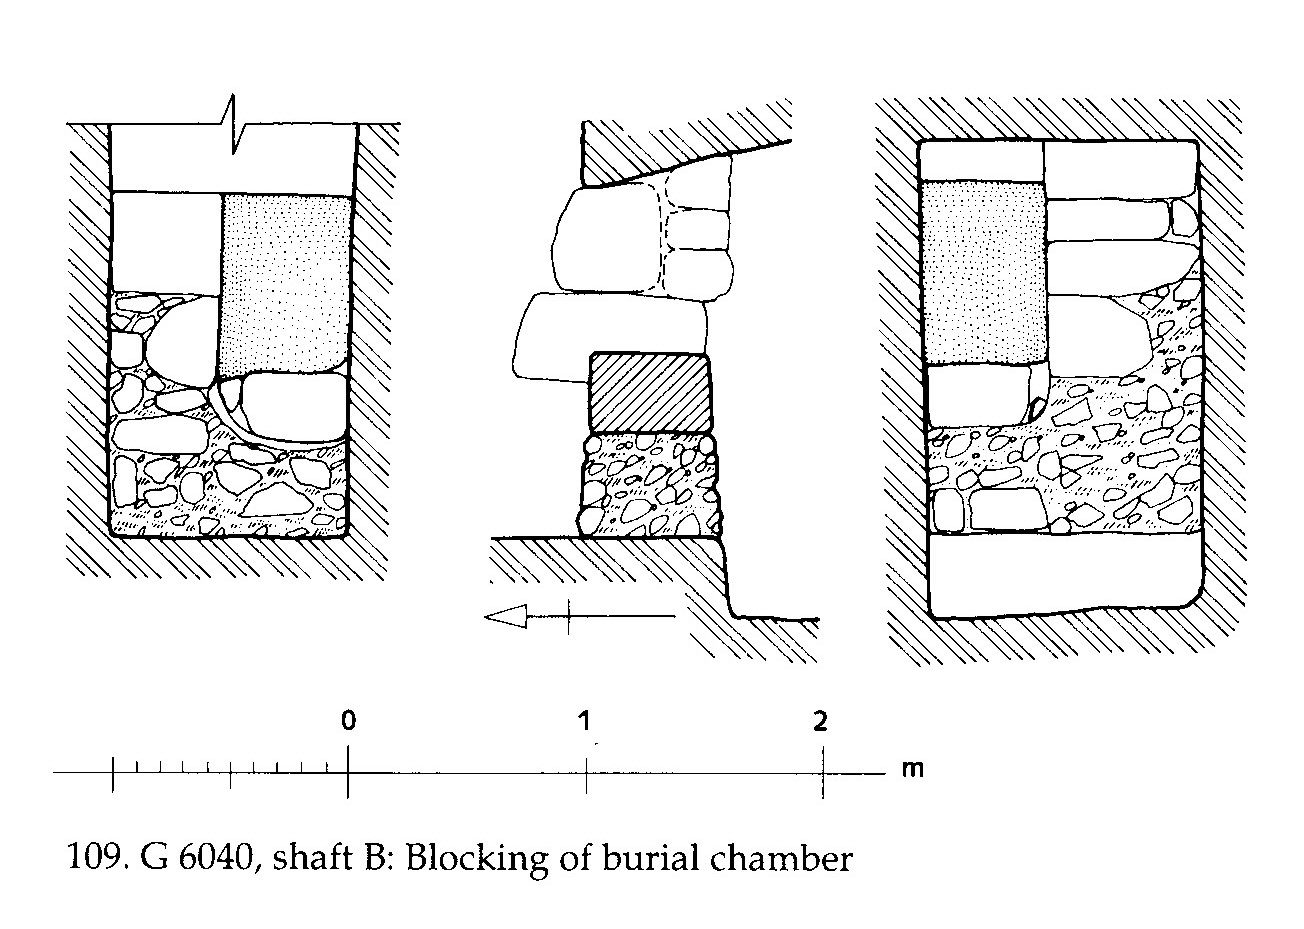 Maps and plans: G 6040, Shaft B, Plan, section and elevation of chamber blocking